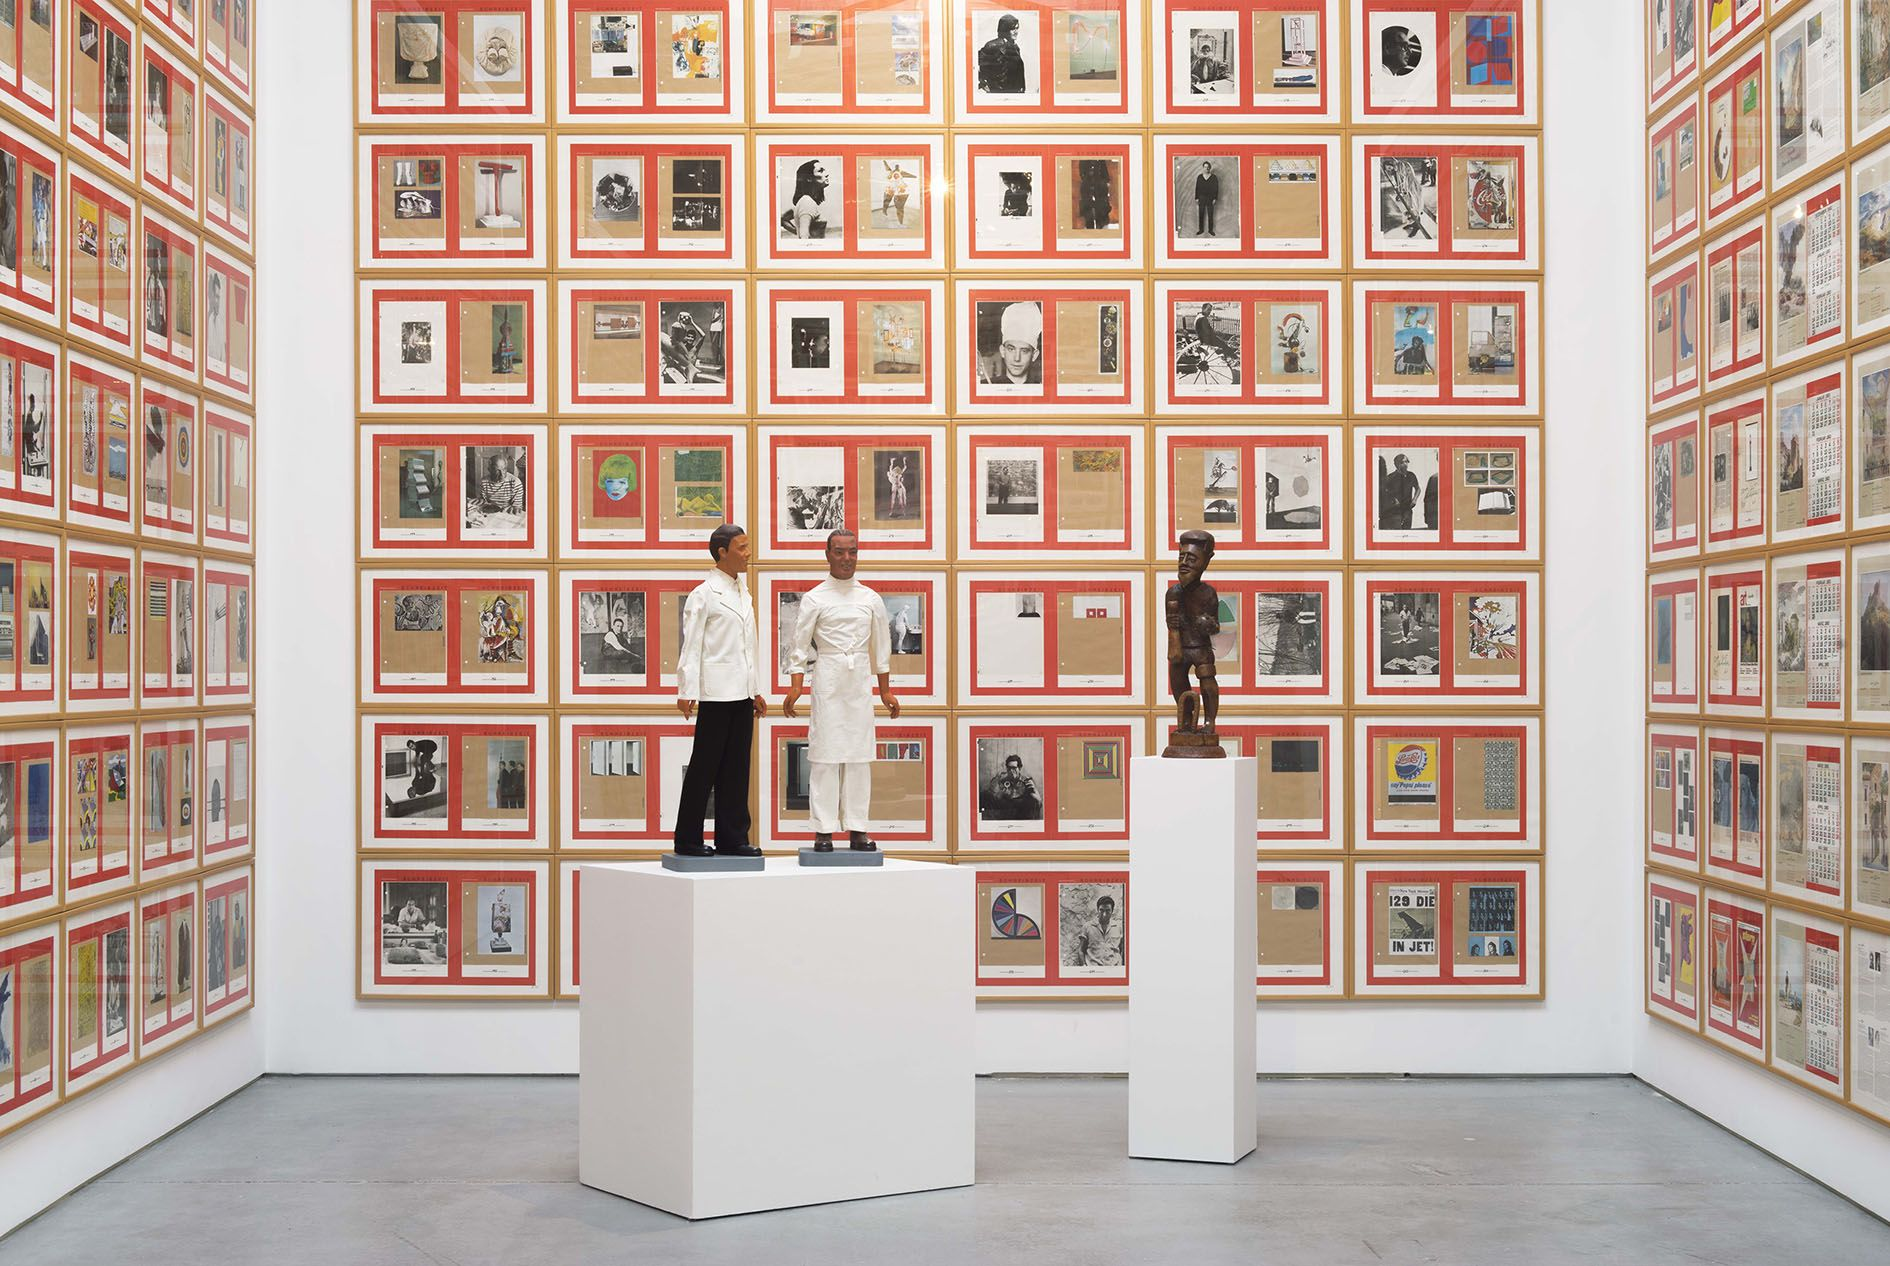 Hanne Darboven Foundation